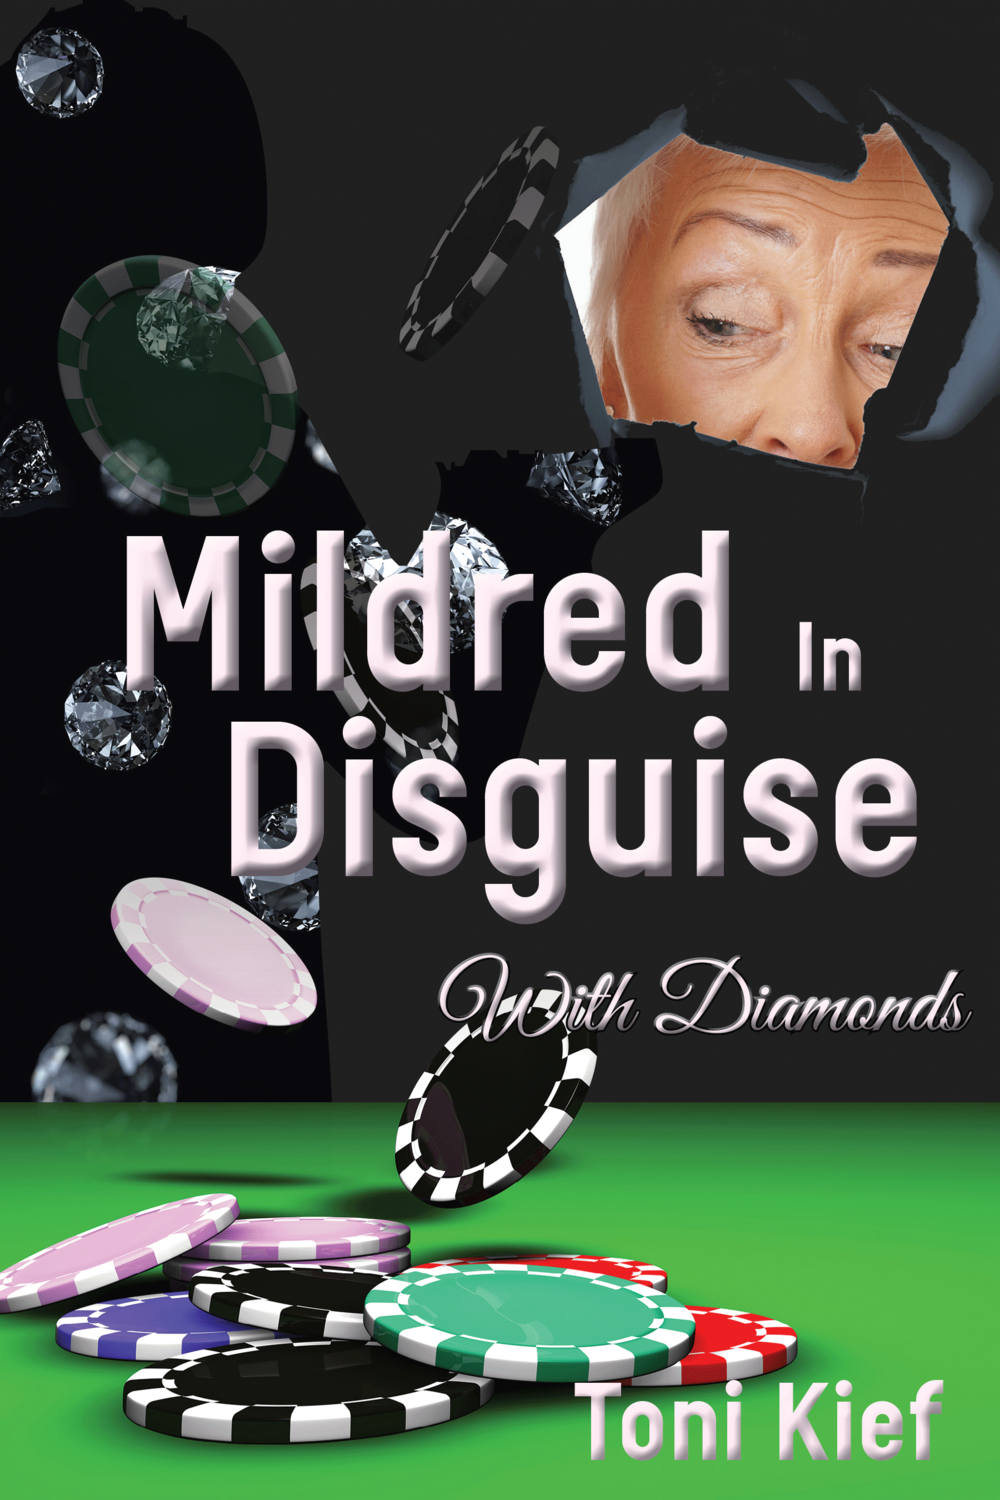 Mildred in Disguise with Diamonds by Toni Kief